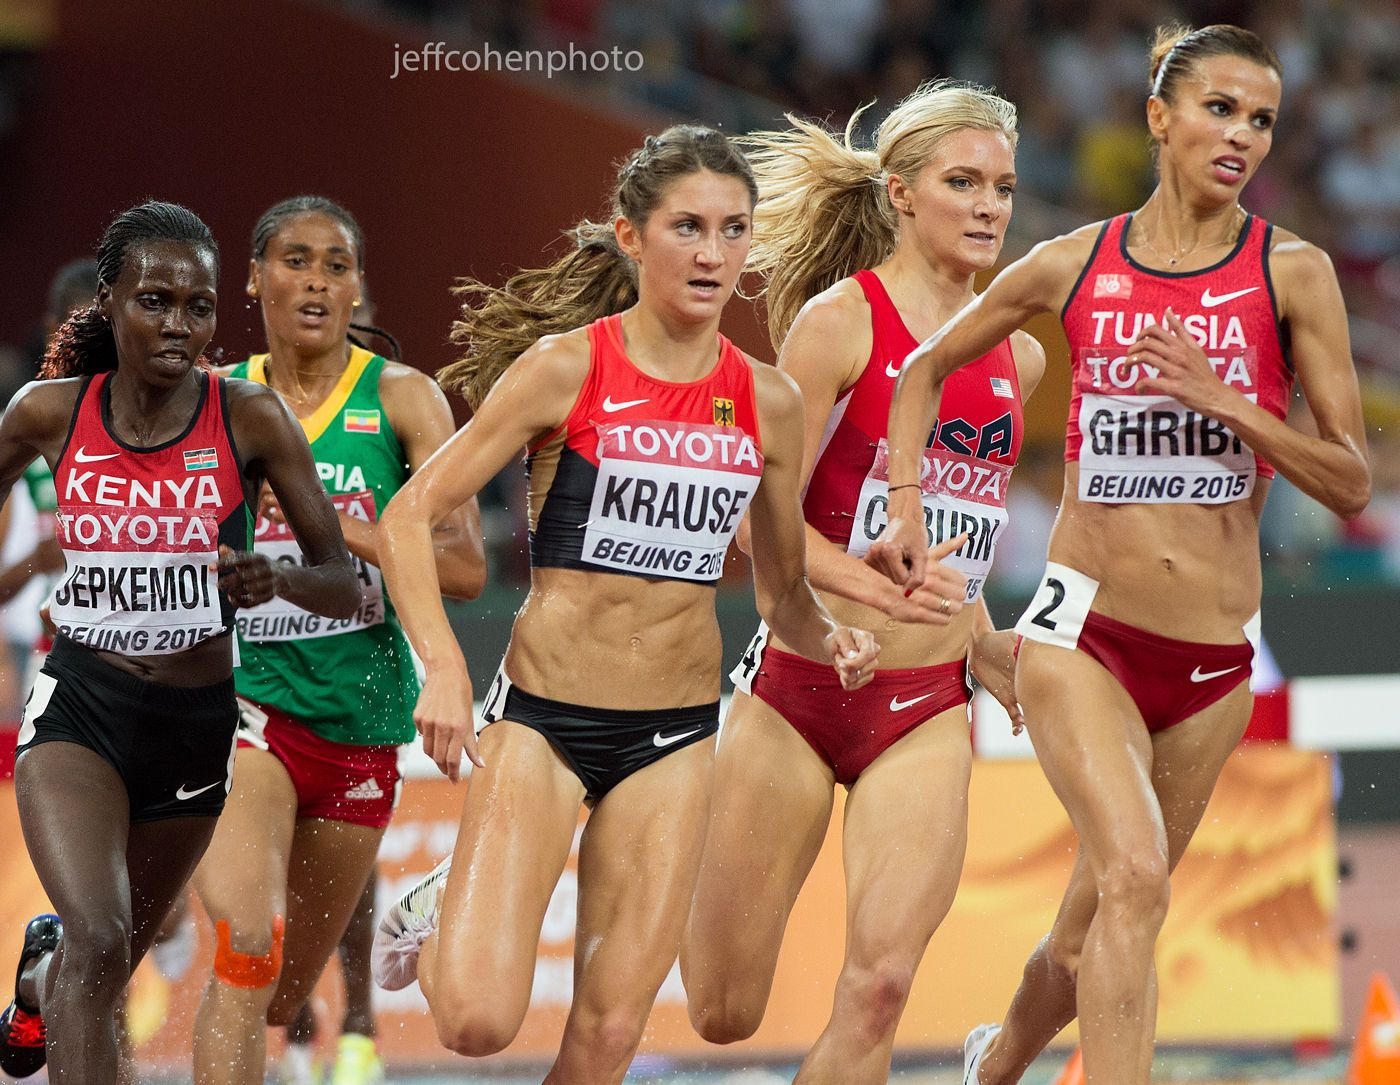 1beijing2015_night__5_steeple_w_last_100m_jeff_cohen_photo_21042_web.jpg